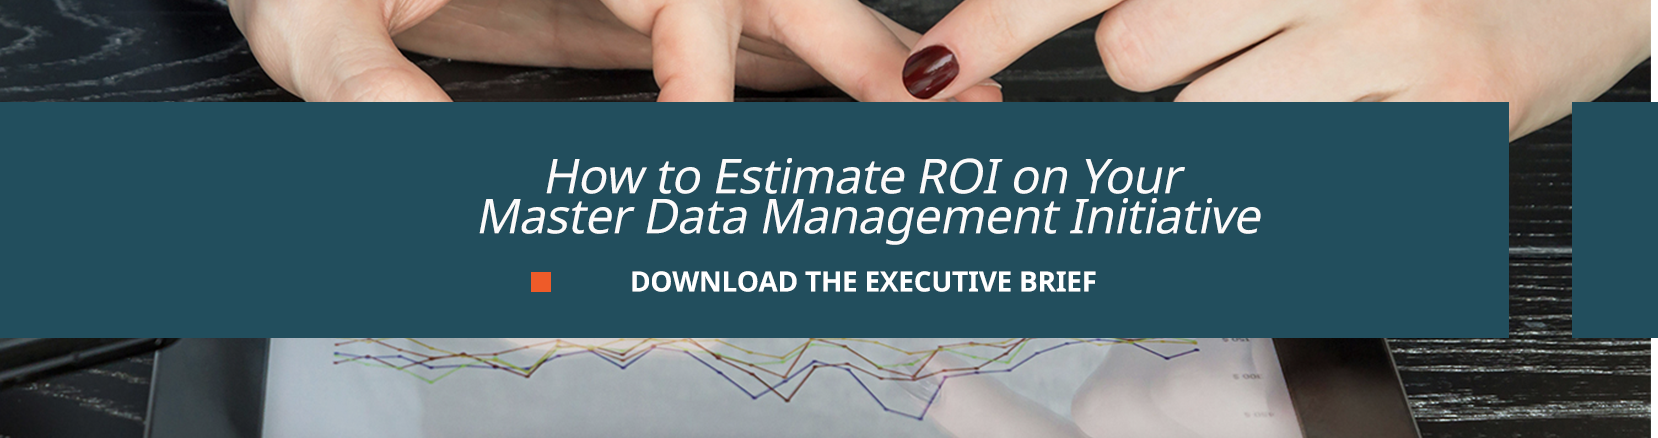 how to estimate roi on your master data management initiative